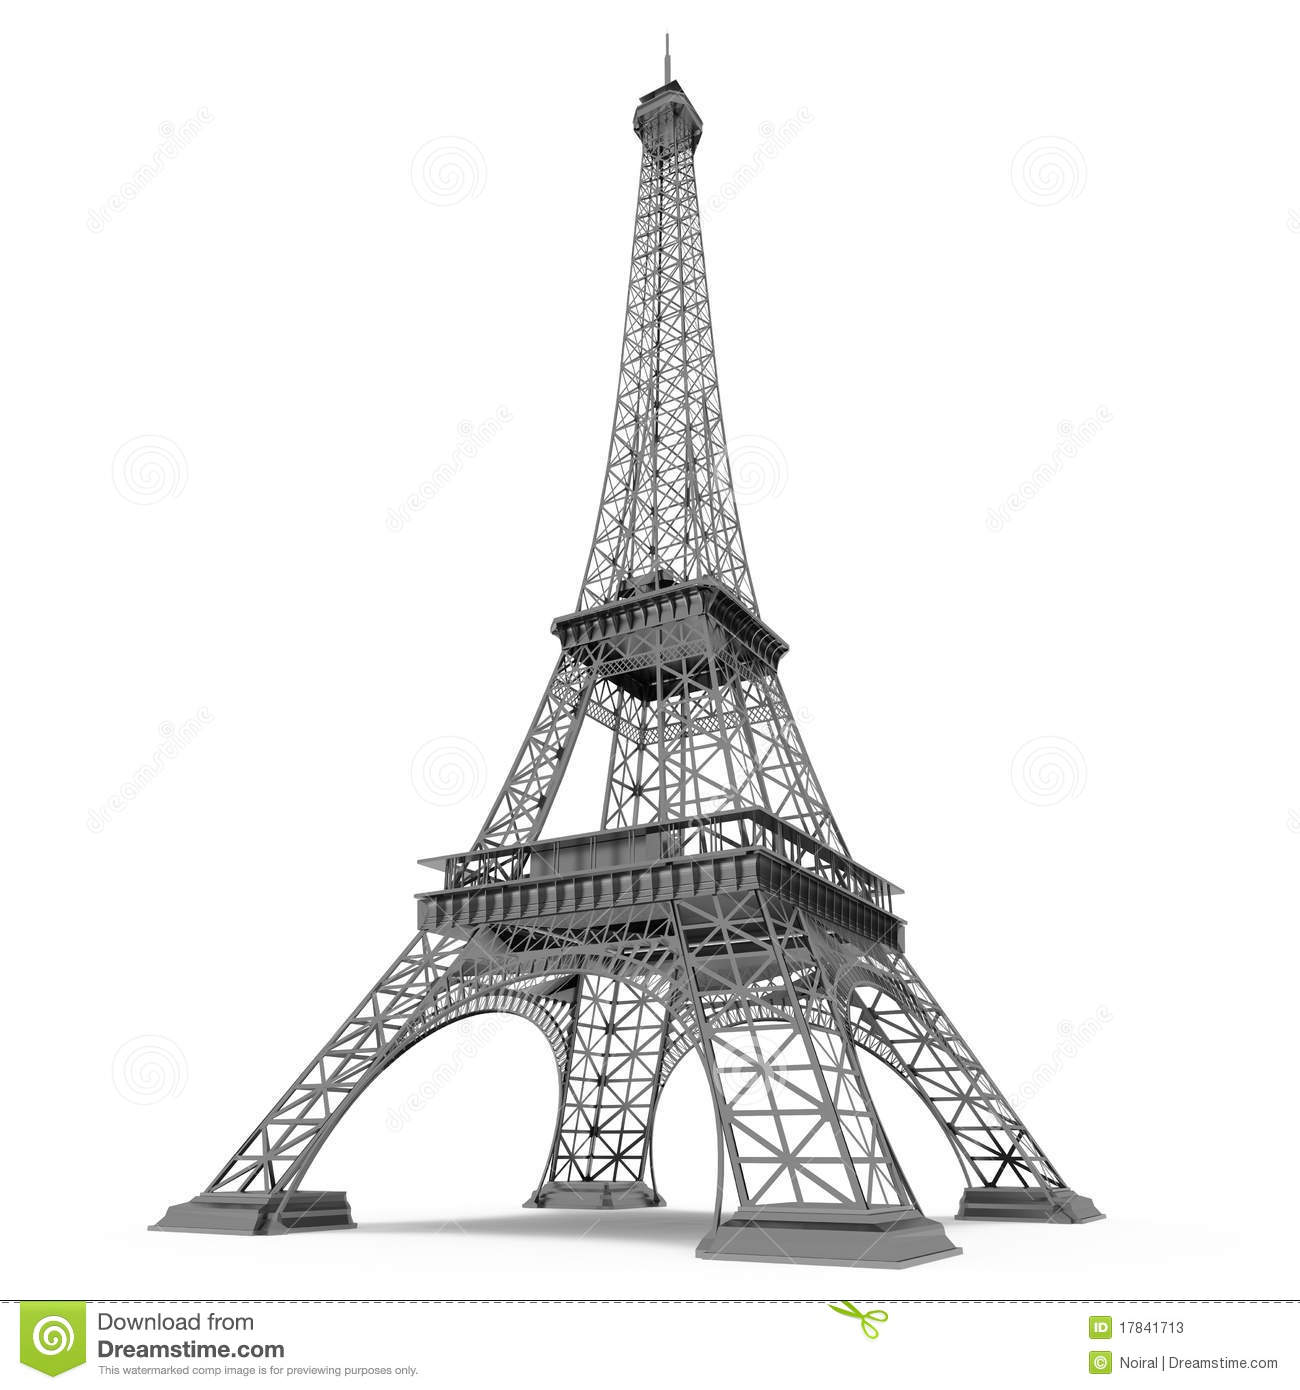 Source Code also Not So Extreme Makeover Home Edition additionally 6085 Snowflakes Frame Coloring Page as well Fotos De Stock Torre Eiffel Em Paris Image17841713 in addition Afdrukken. on 11240